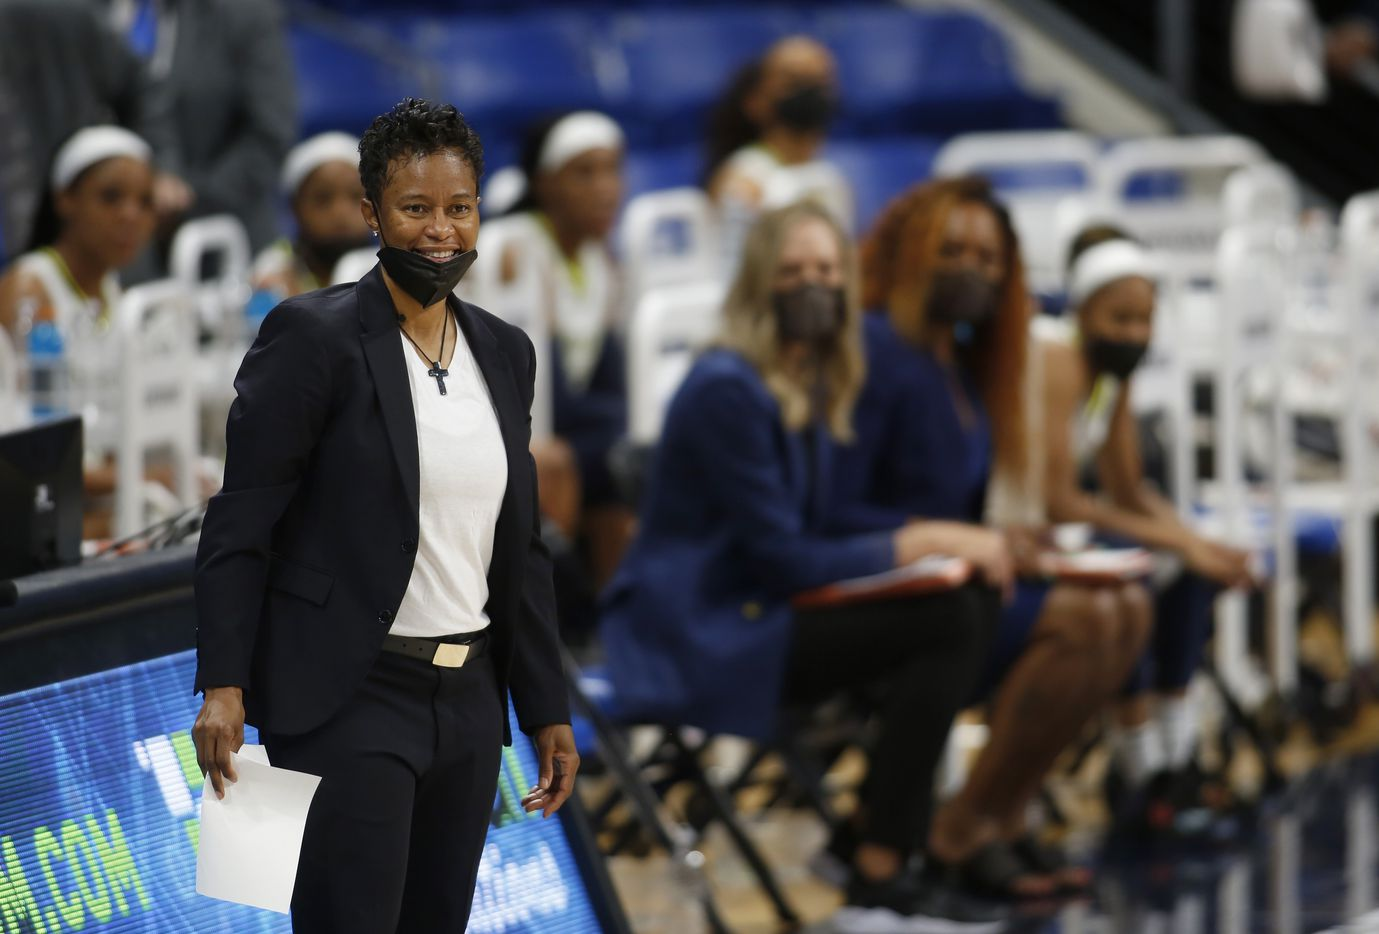 Dallas Wings head coach Vickie Johnson reacts to a play during second half action against Seattle. The Wings hosted the Storm for their WNBA 2021season home opener at UTA's College Park Center in Arlington on May 22, 2021. (Steve Hamm/ Special Contributor)